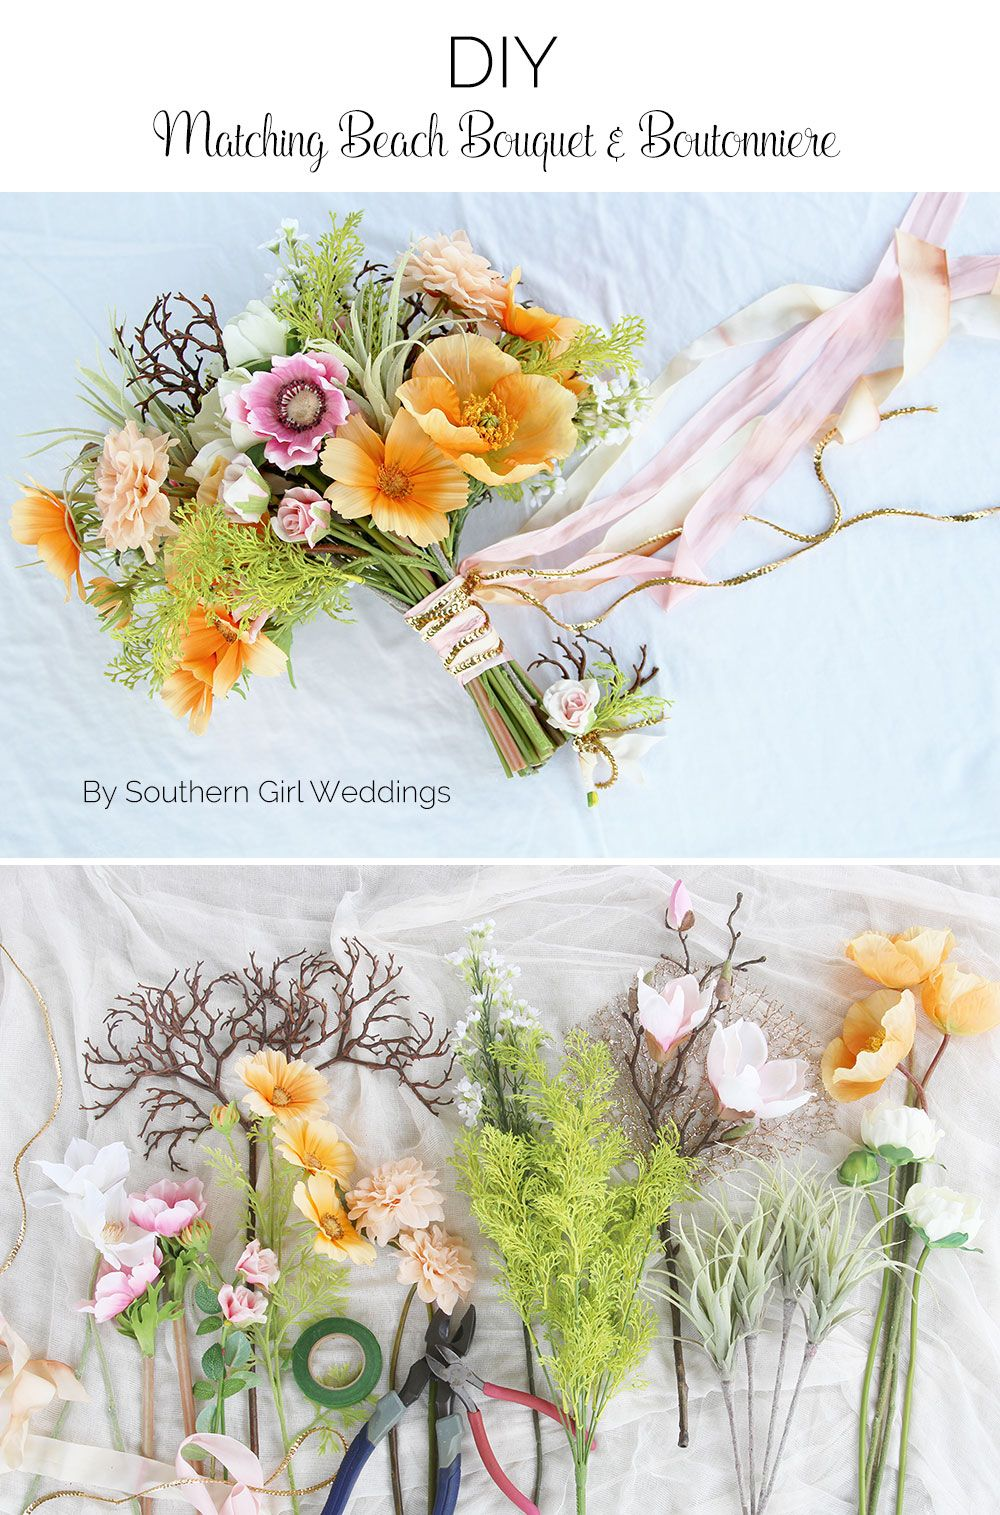 Diy bouquet boutonniere beach theme beach themed weddings diy bouquet boutonniere beach theme mightylinksfo Choice Image